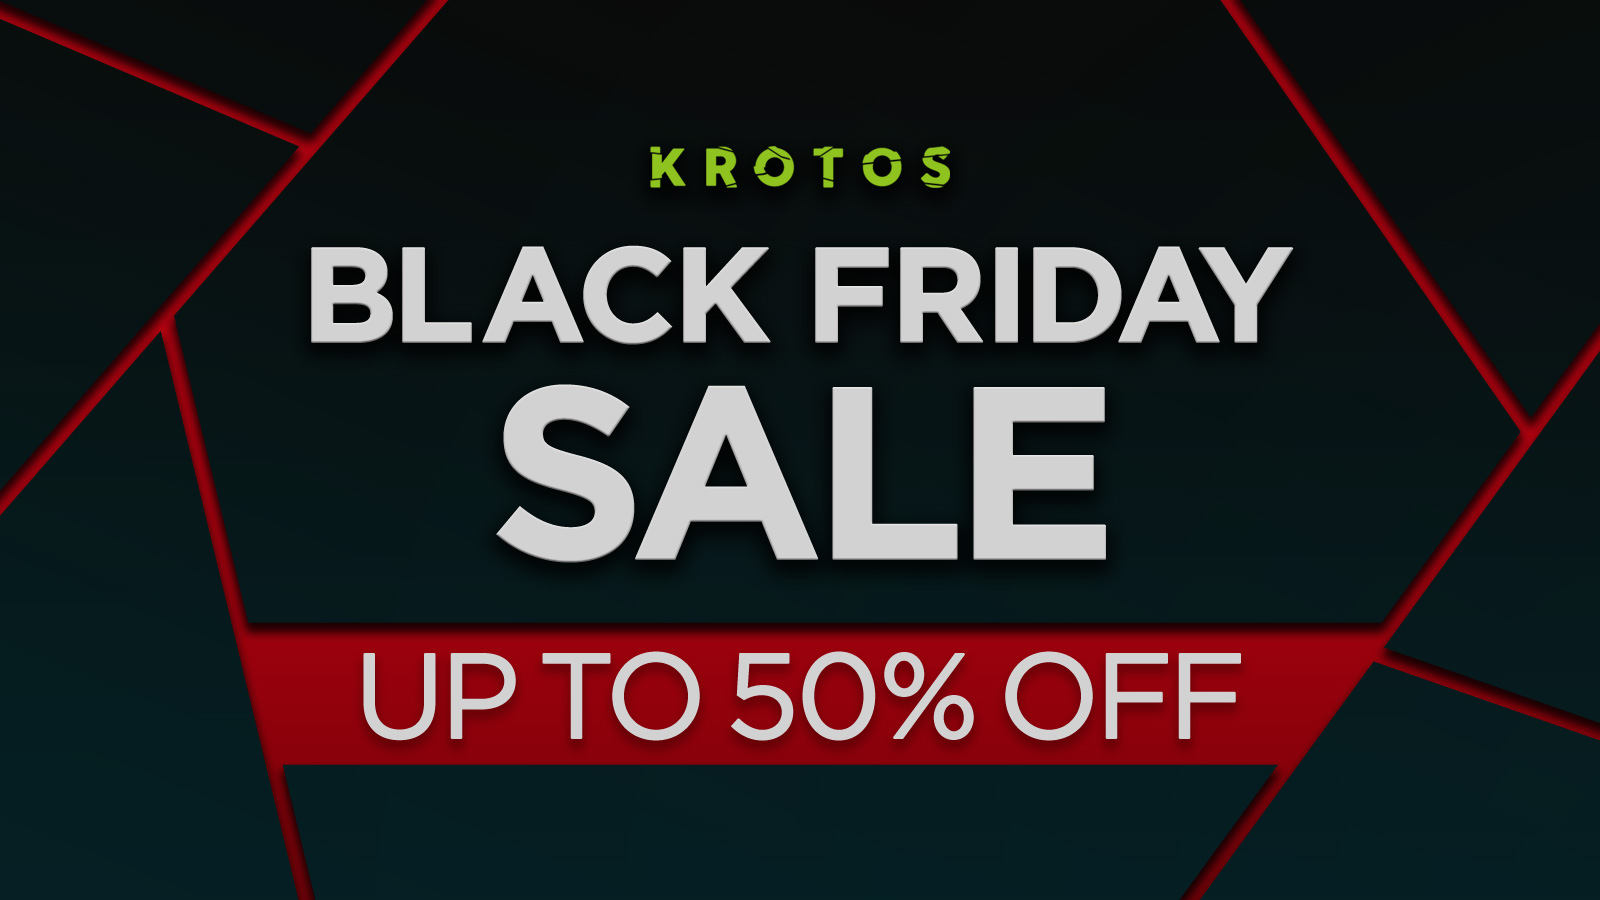 KROTOS Black Friday 2019